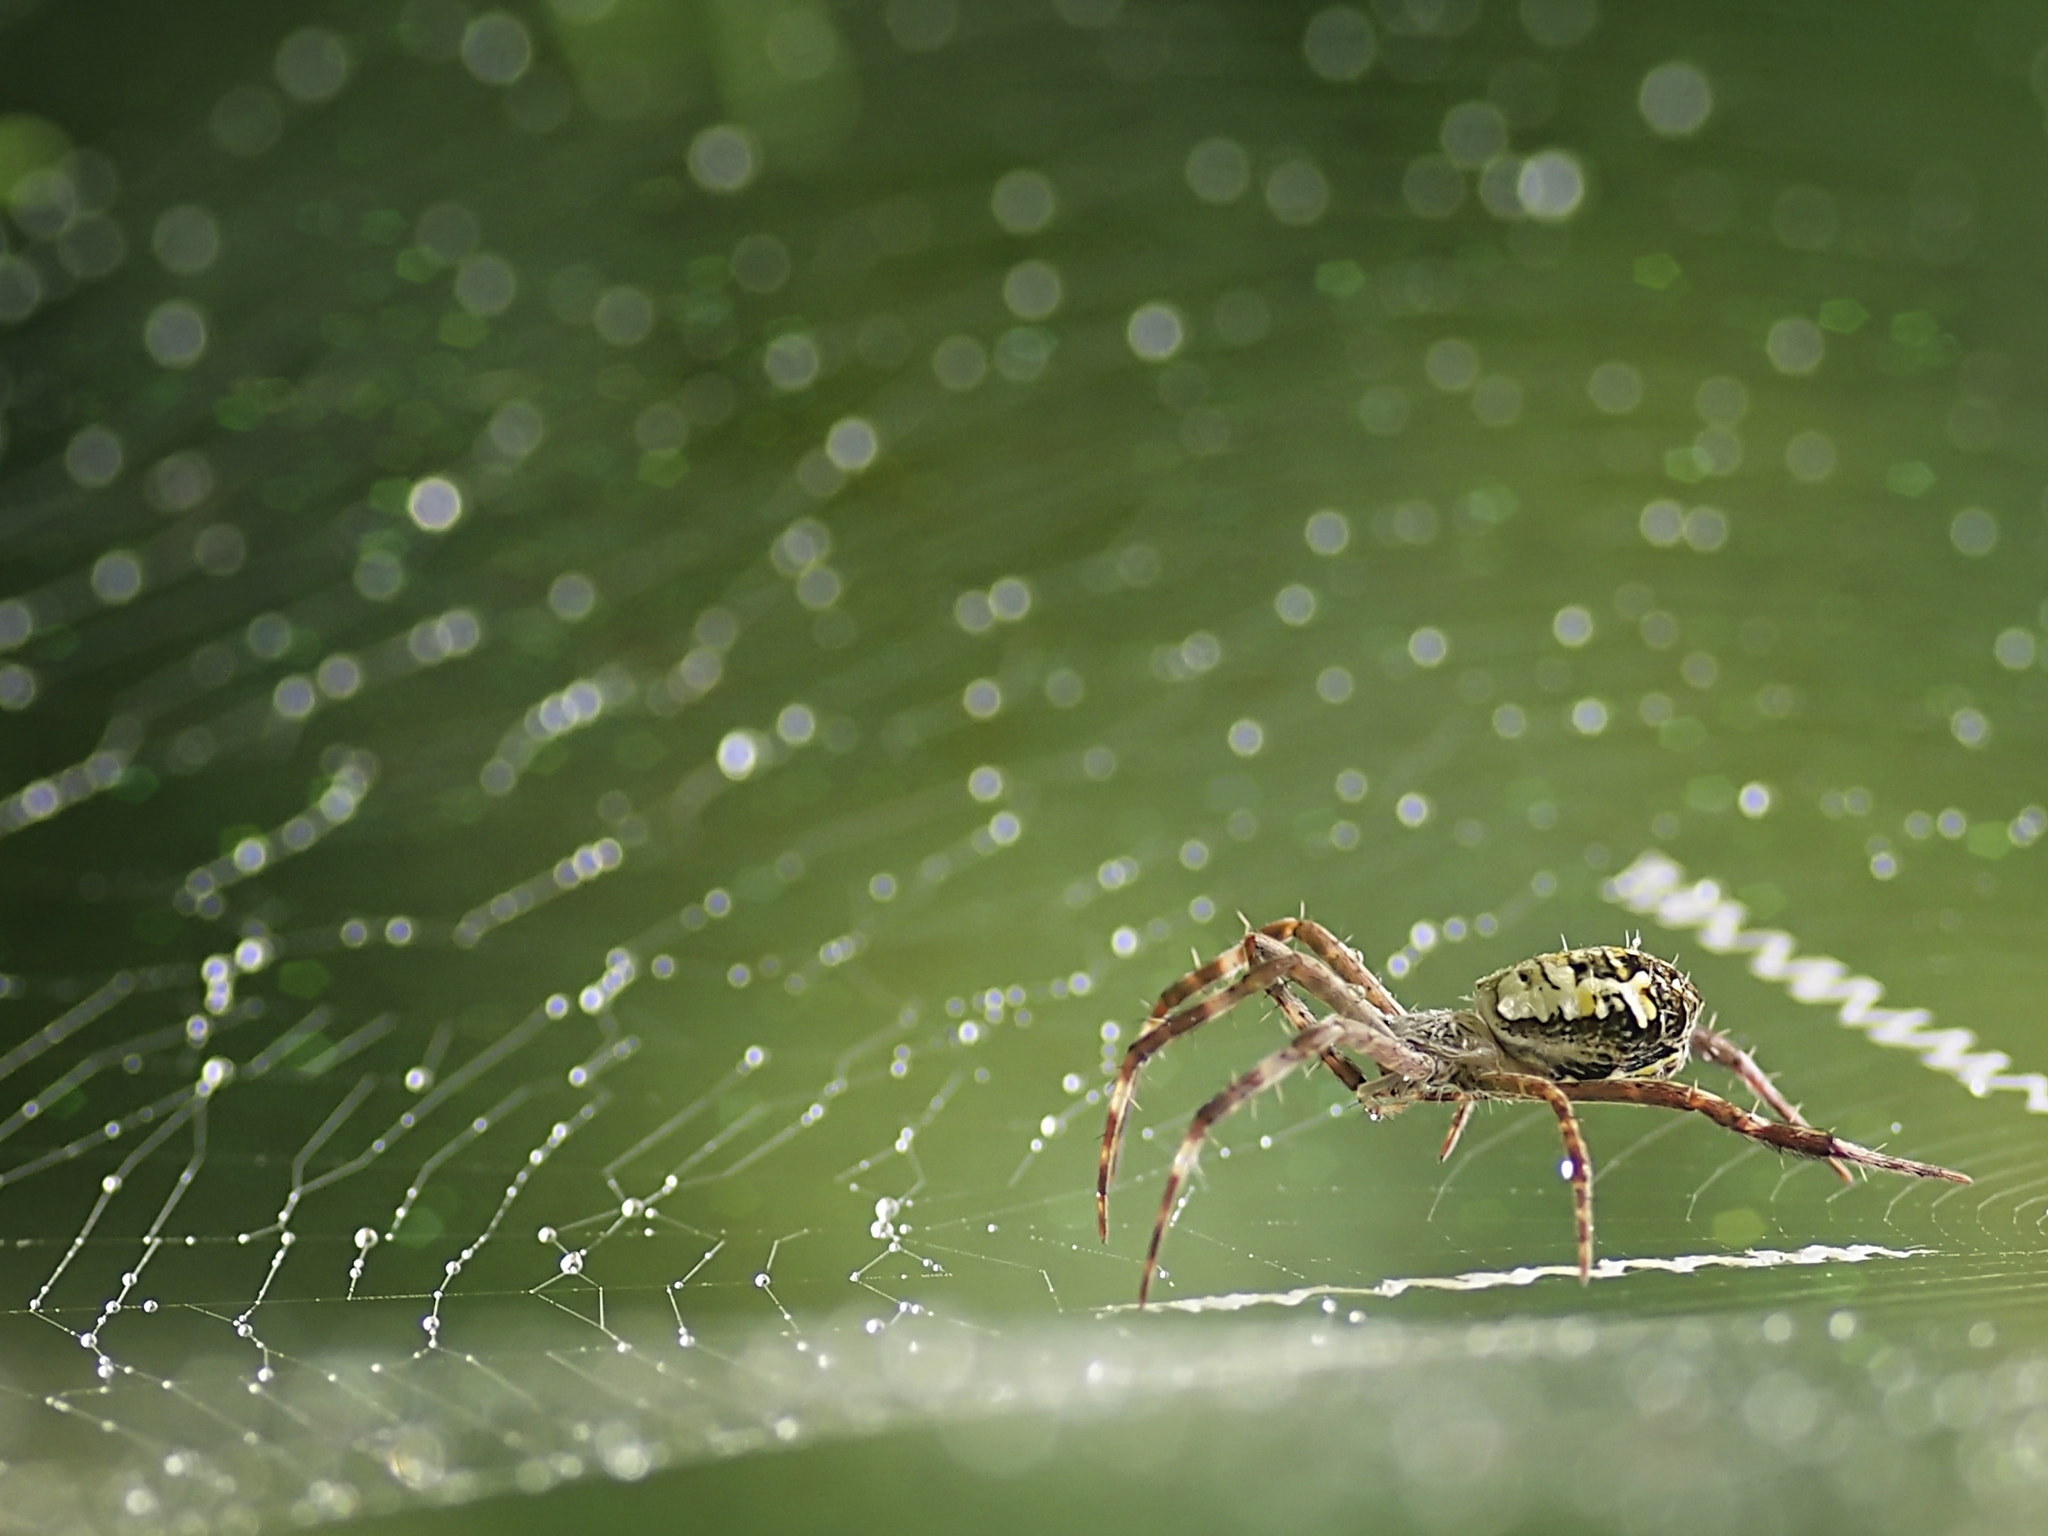 Photograph Spider and Bokeh by Bernard Budi Susanto on 500px